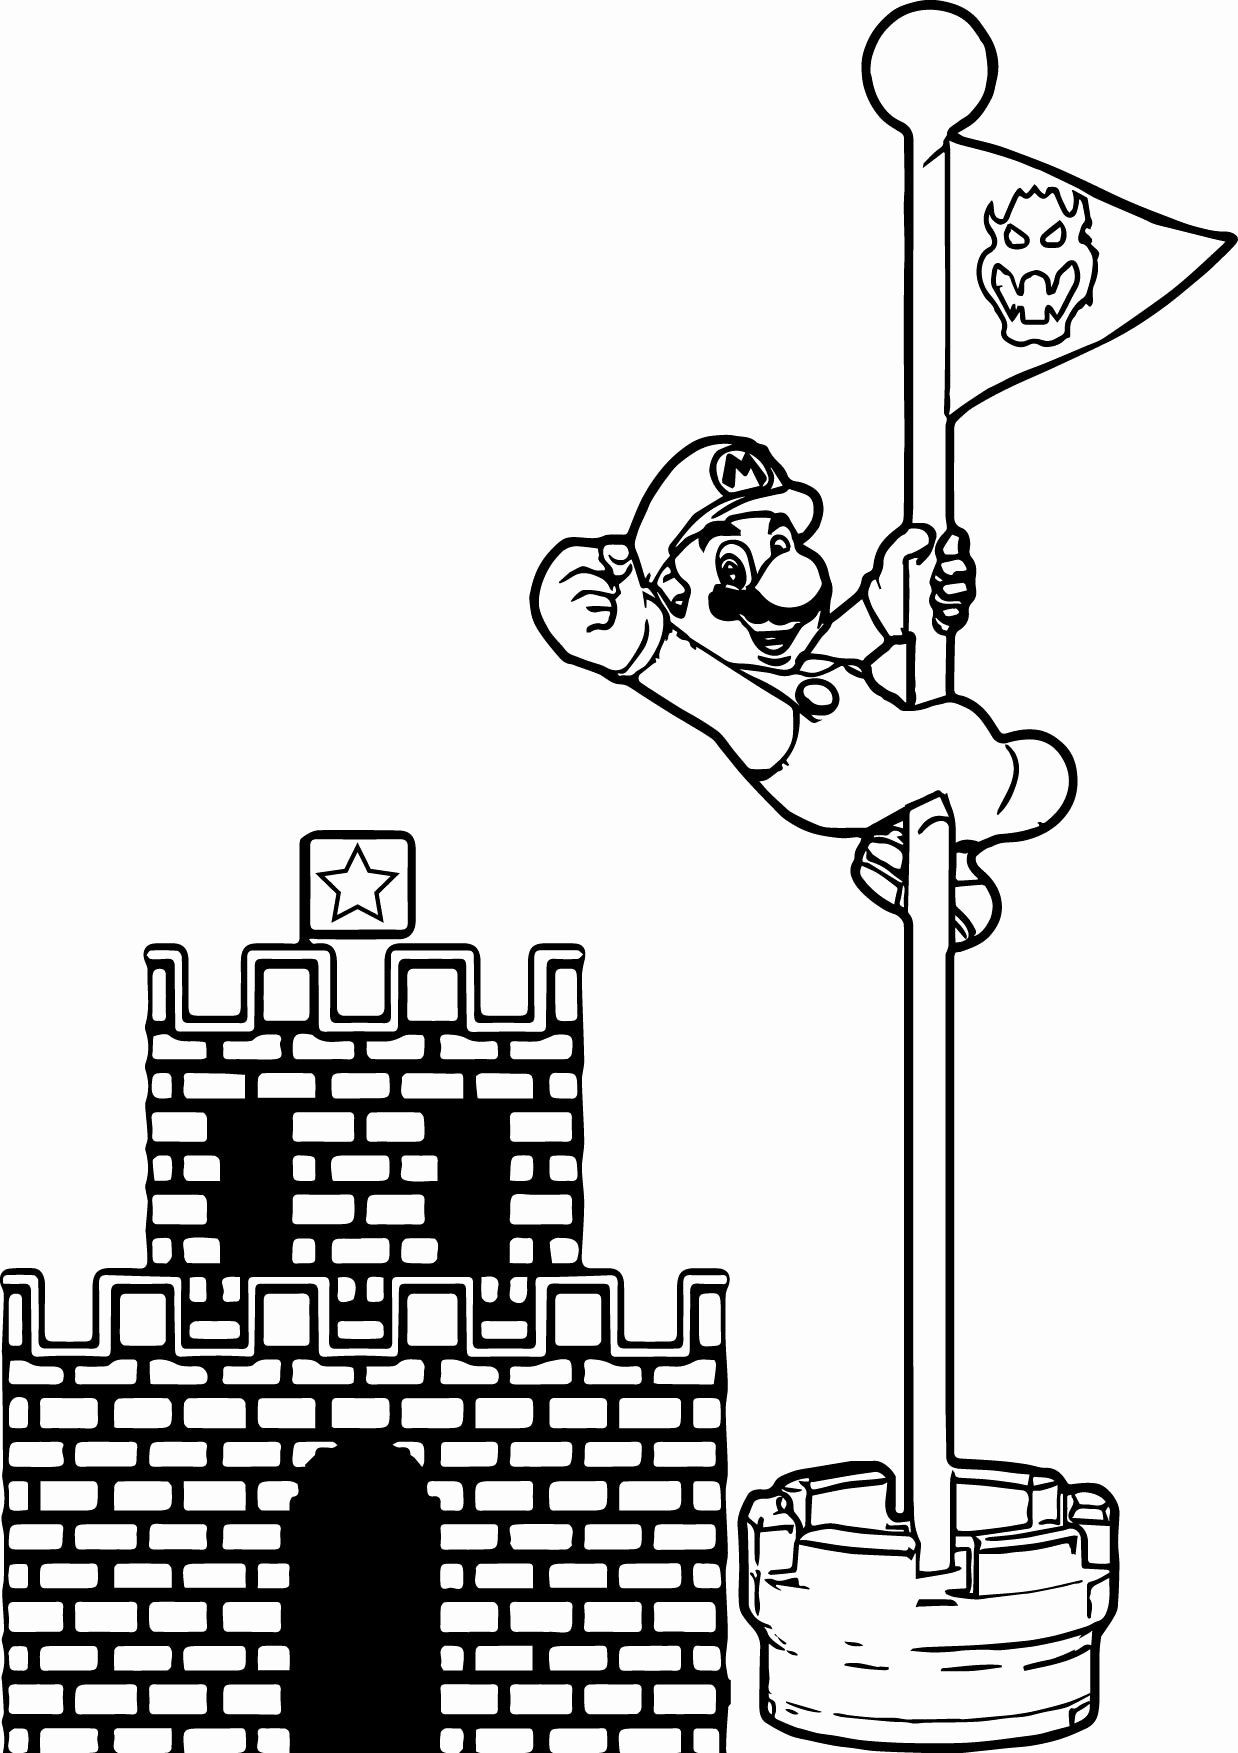 24 Super Mario Brothers Coloring Page in 2020 Super